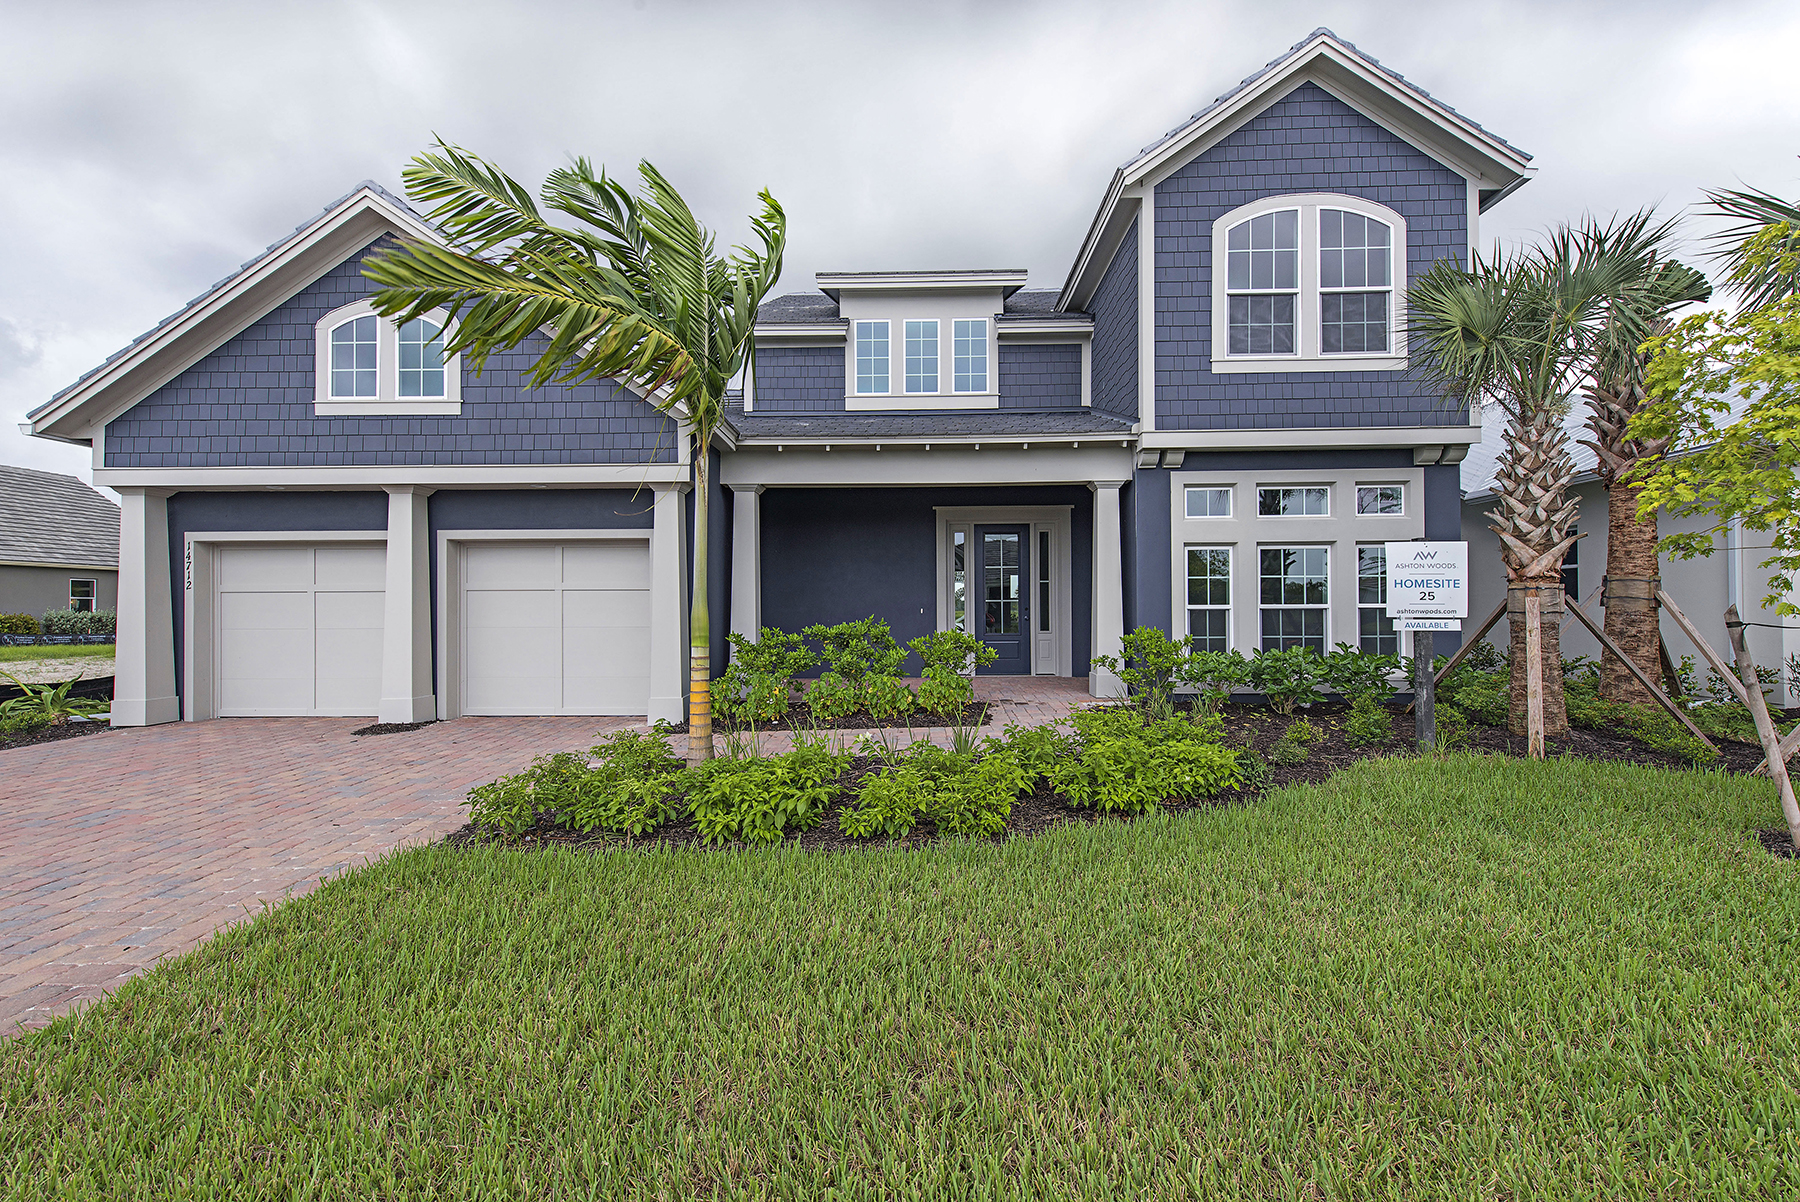 open-houses property at NAPLES RESERVE - SAVANNAH LAKES